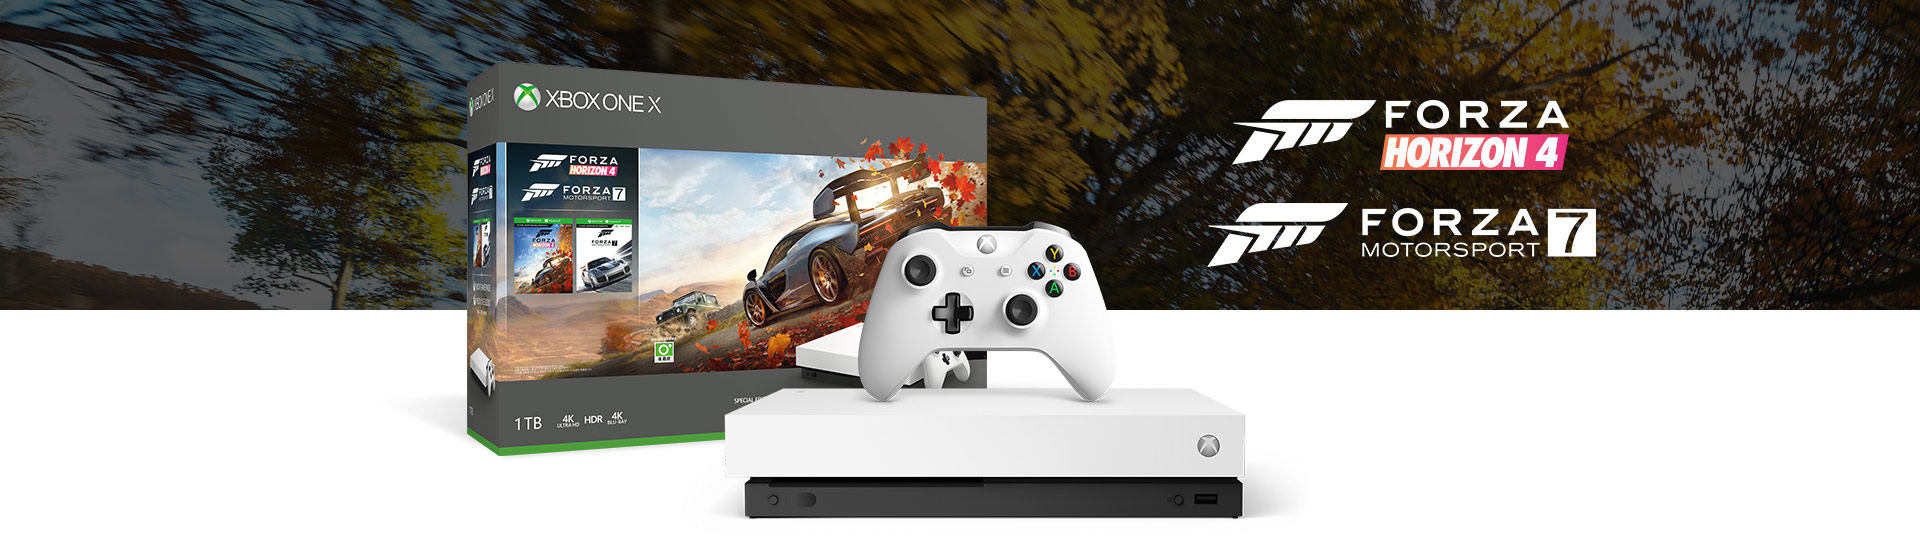 Front view of Xbox One X Robot White Special Edition Forza Horizon 4 Bundle with product box